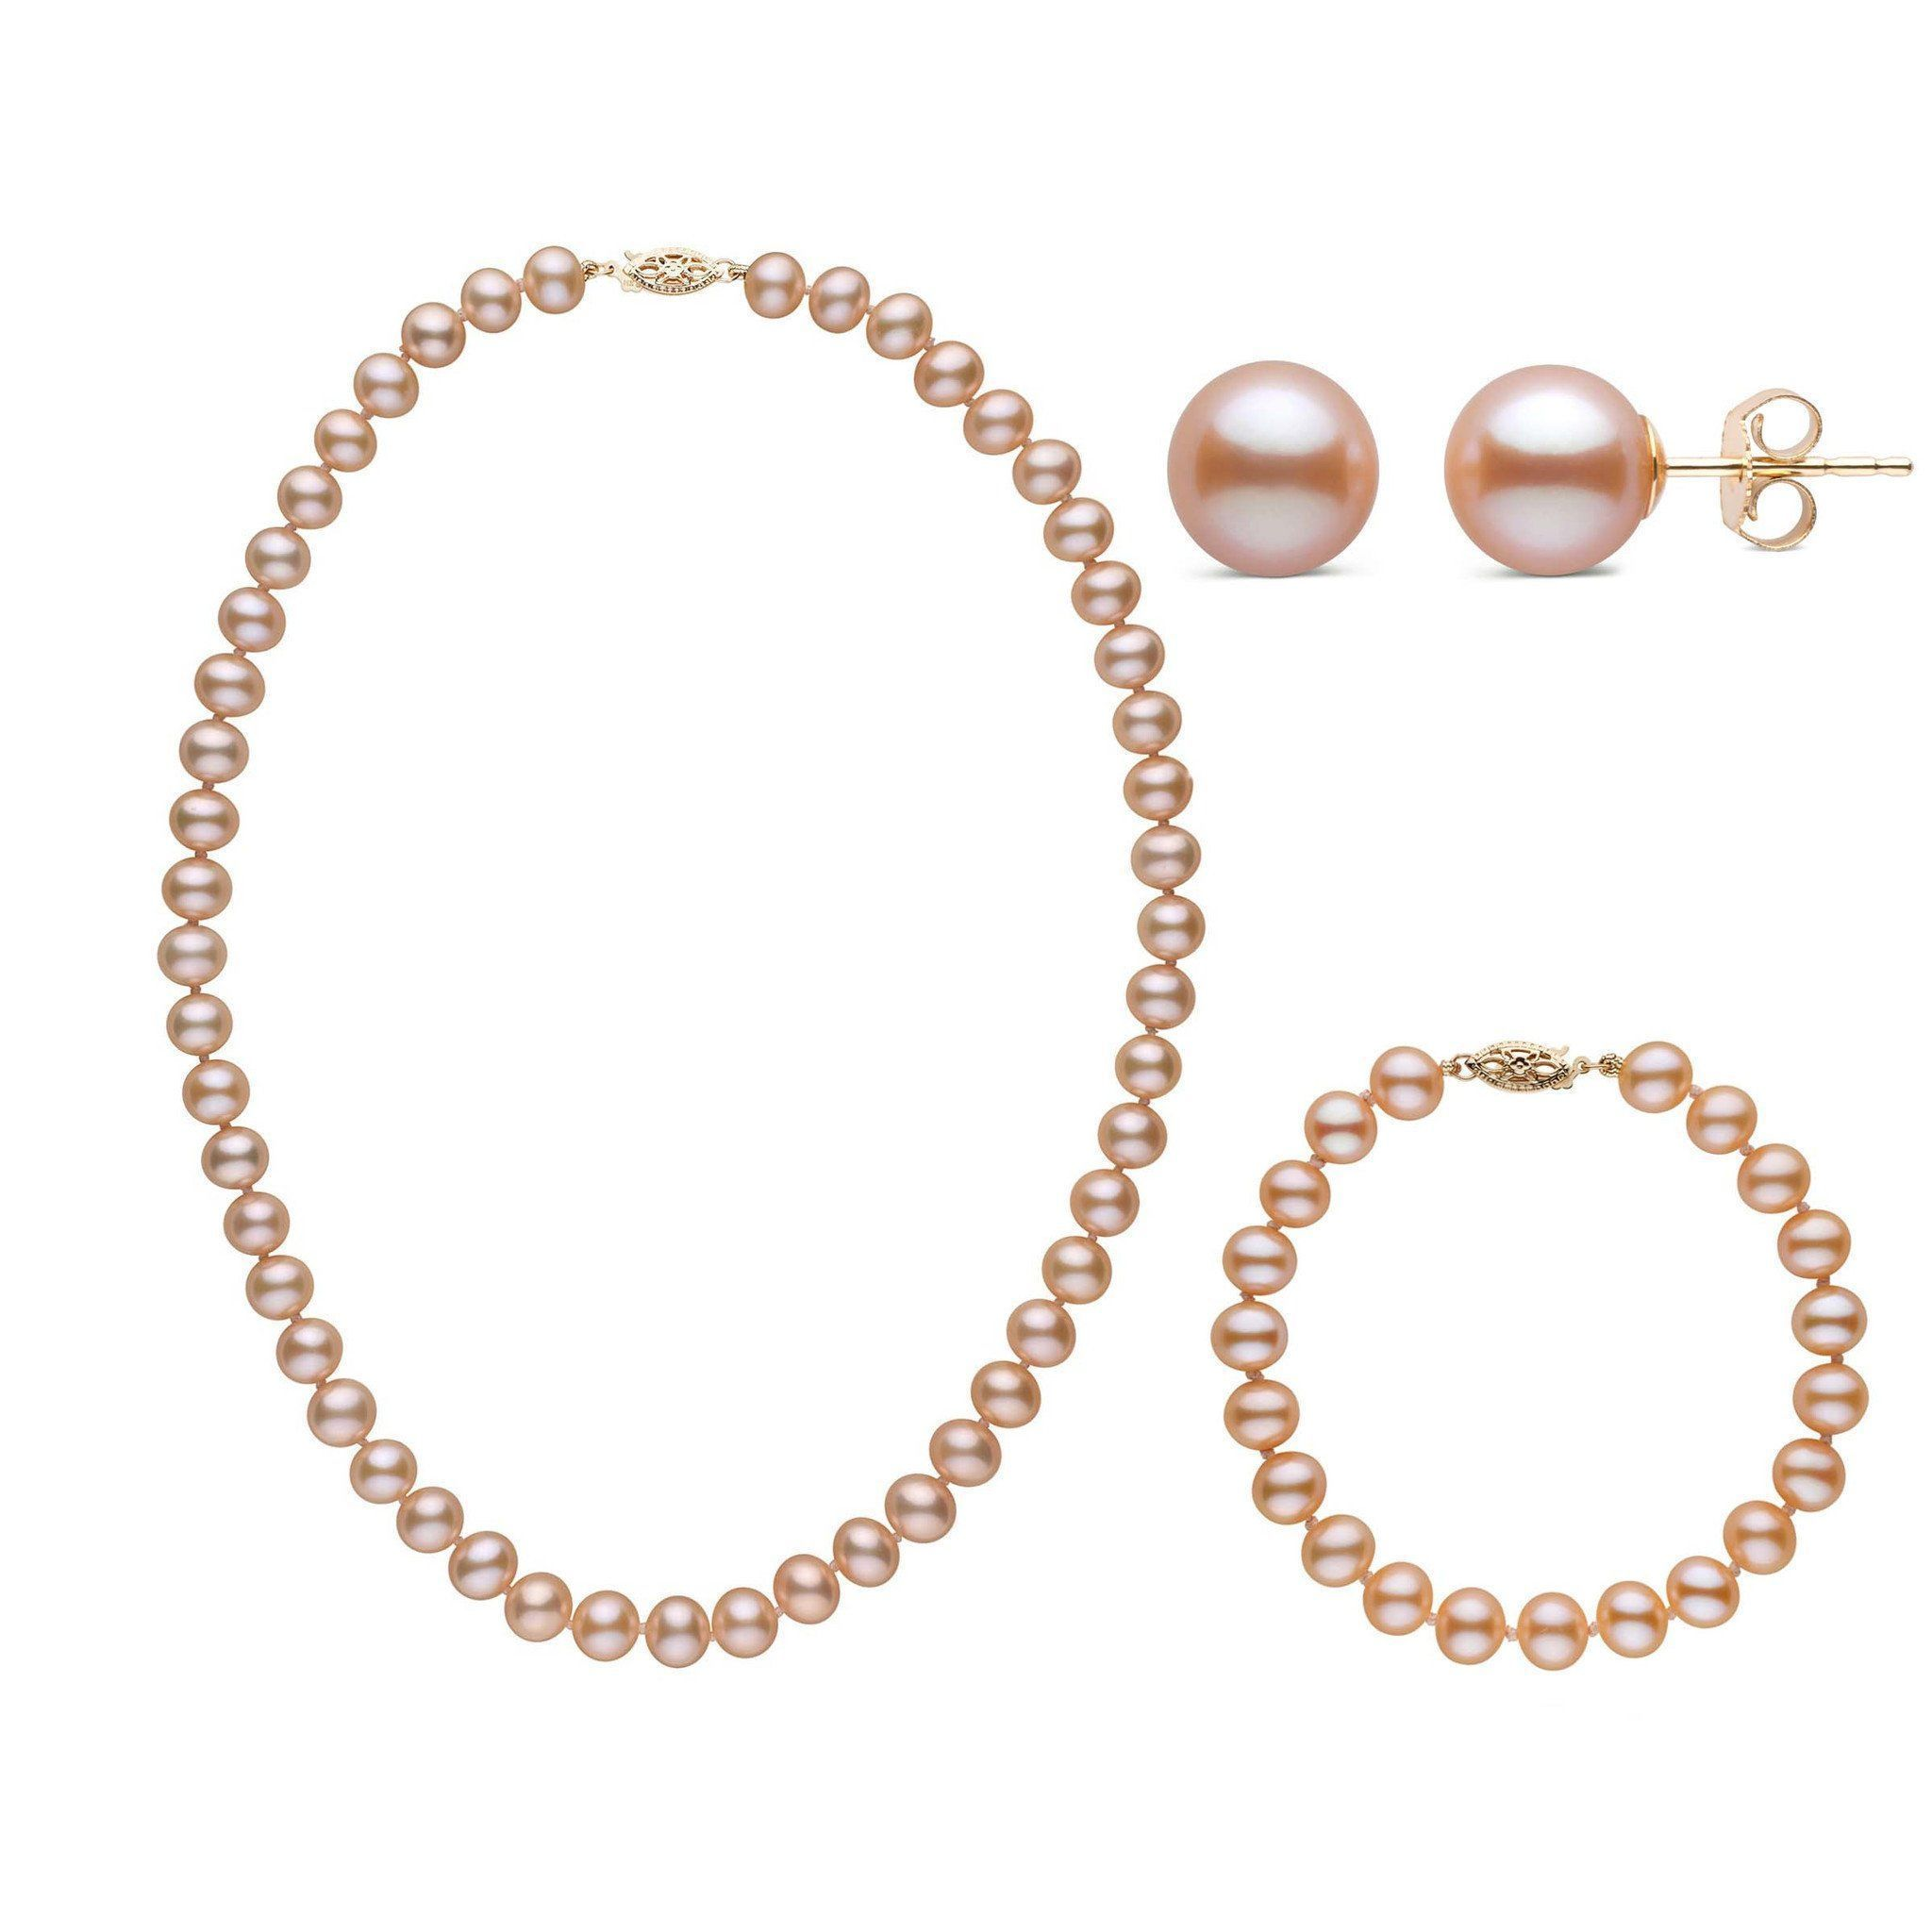 16 Inch 3 Piece Set of 7.5-8.0 mm AA+ Pink Freshwater Pearls